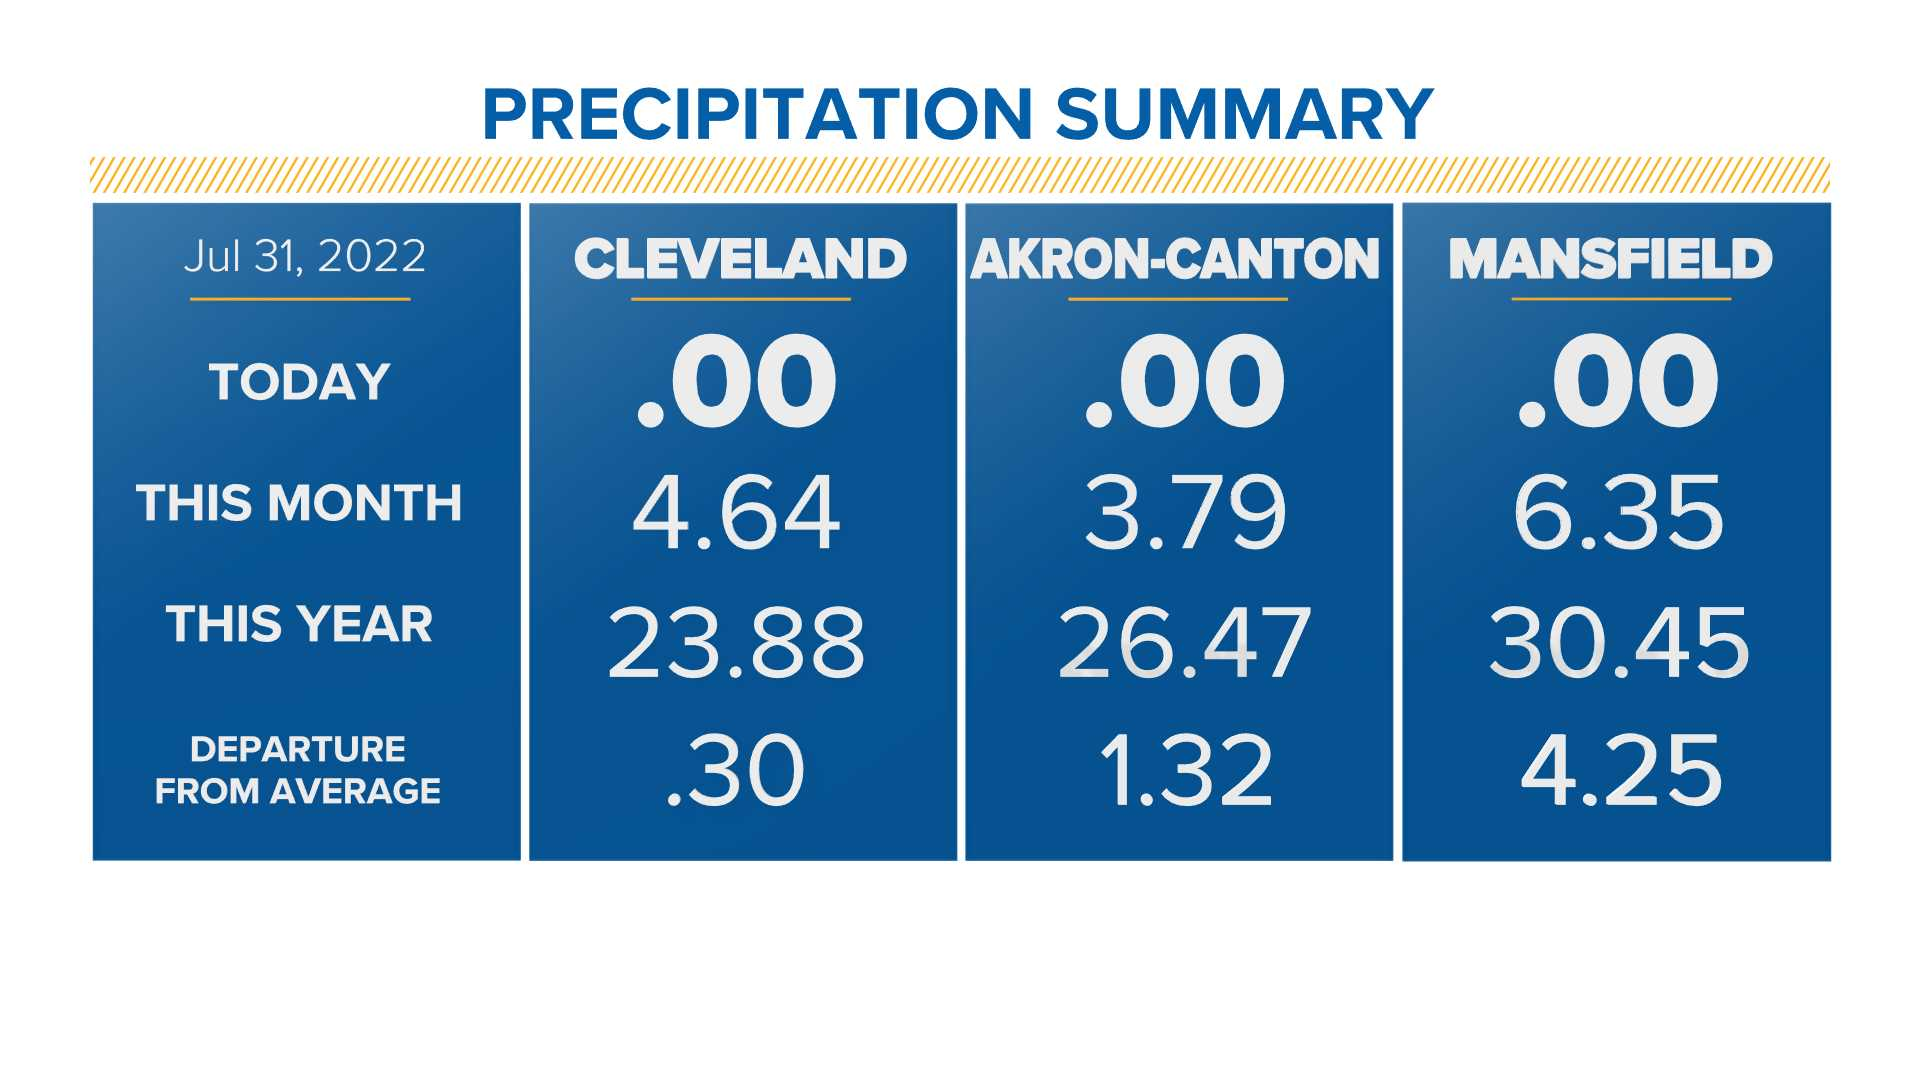 Precipitation To Date